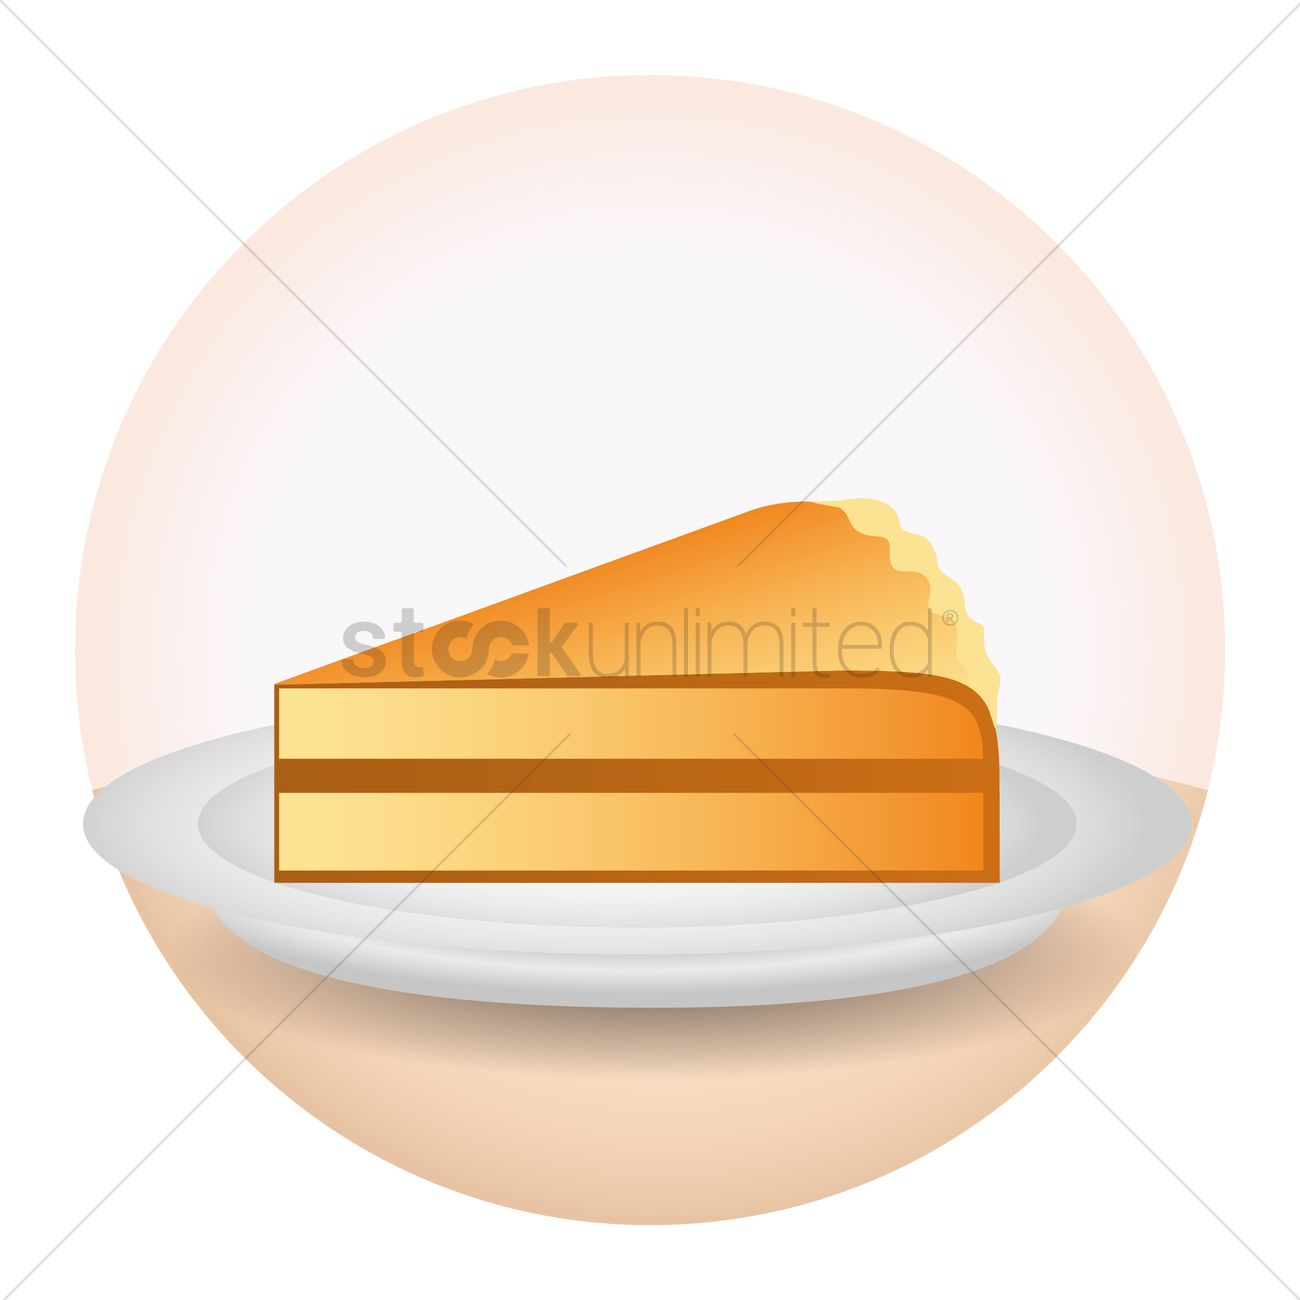 1300x1300 Pumpkin Pie Slice Vector Image